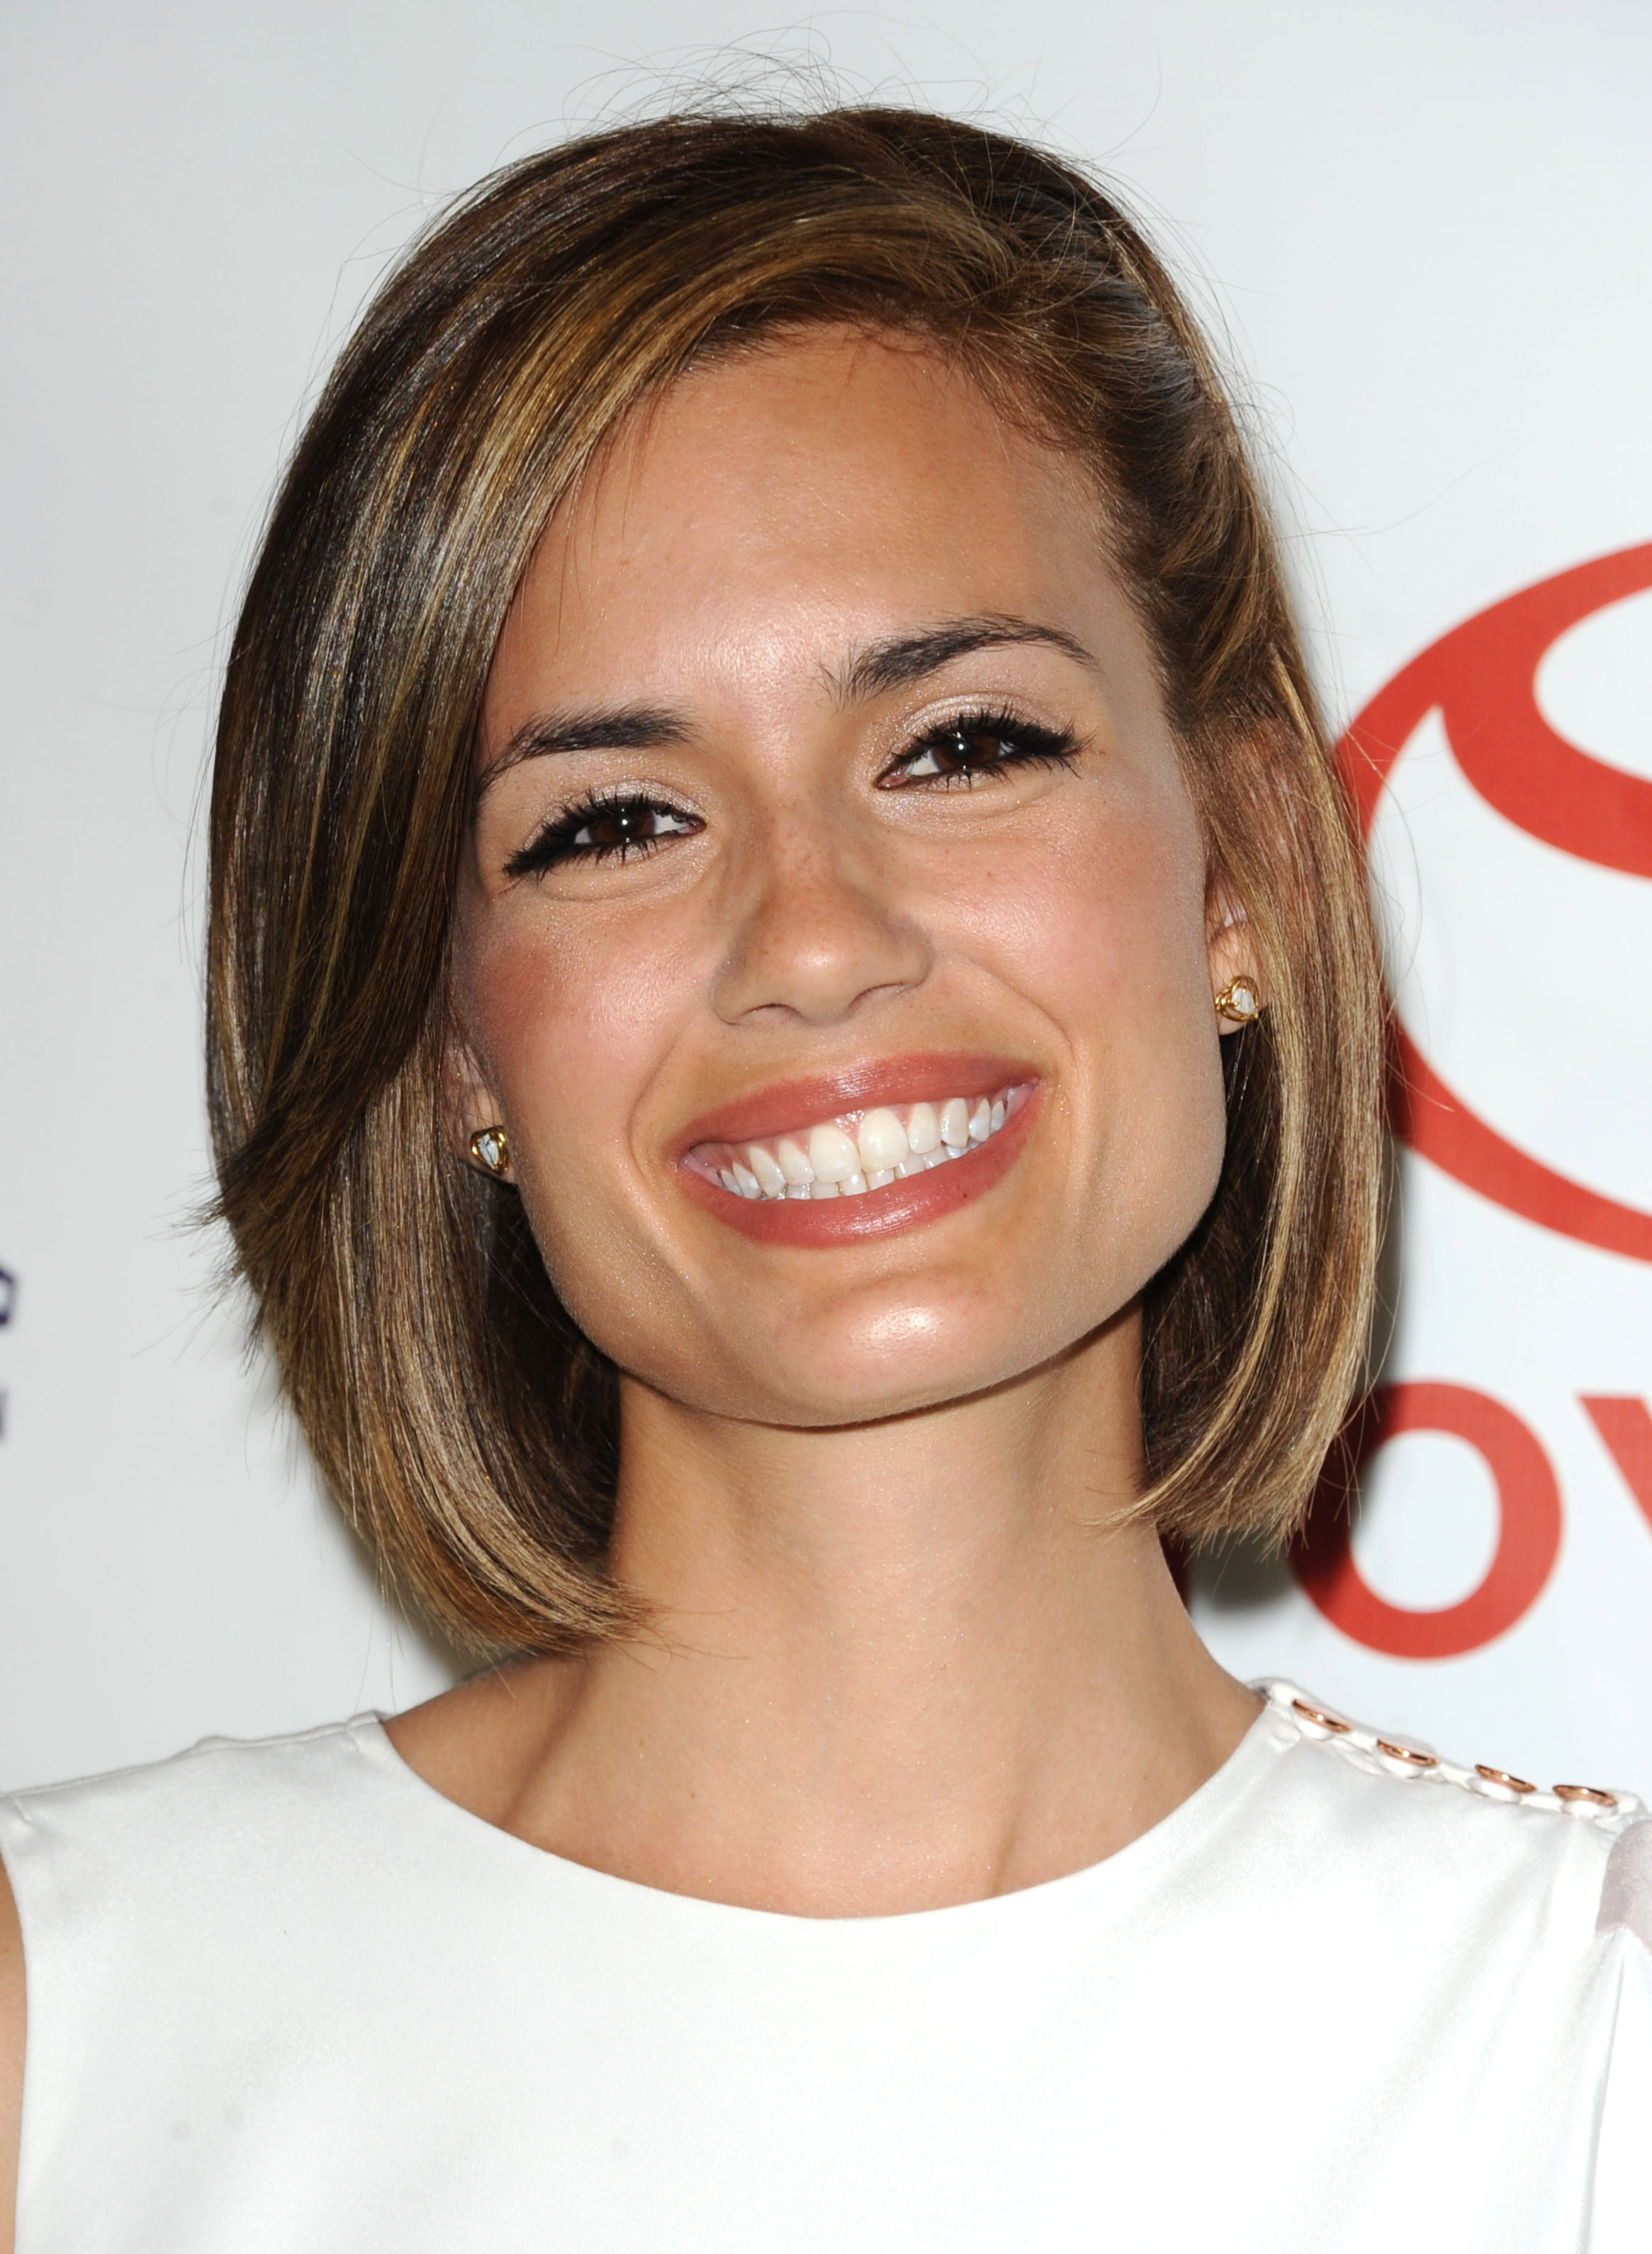 Embed Tweet TorreyJDeVitto May 5 Don forget to set up a web-based ...